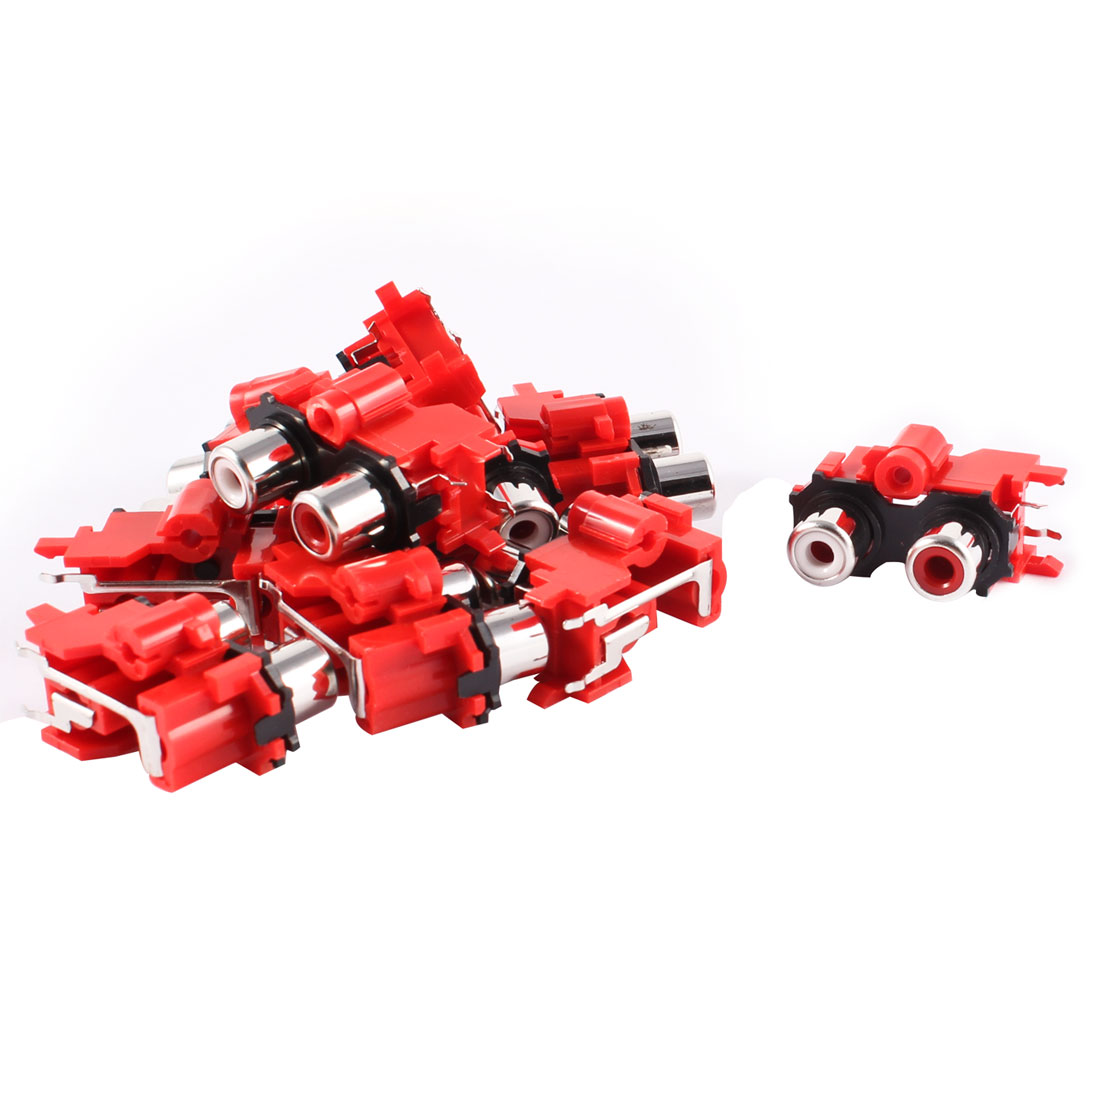 10 Pcs Red Plastic Double 3.5mm RCA Female Socket AV Connector Adapter